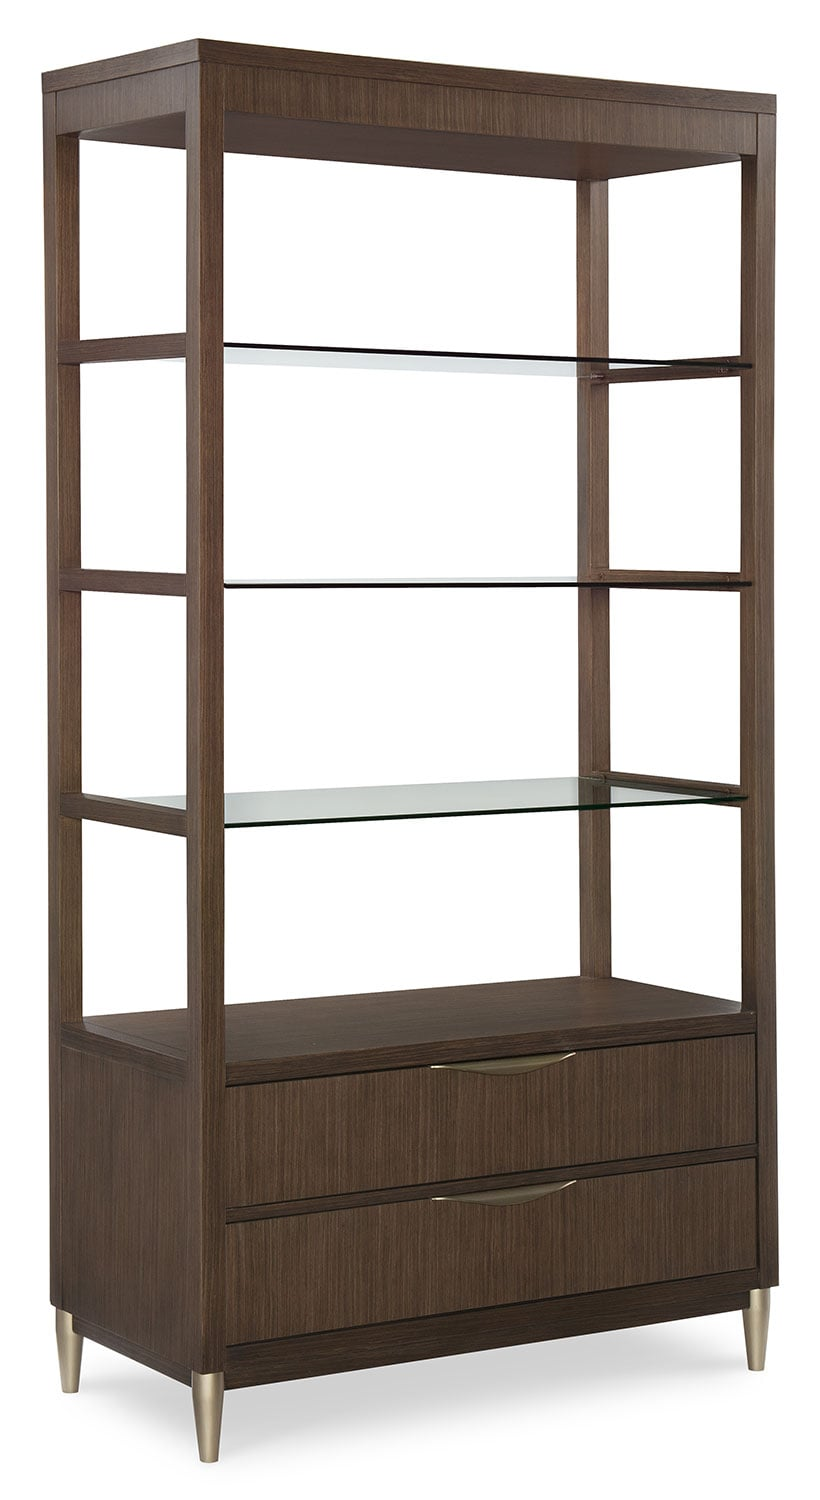 Rachael Ray Soho Etagere - Ash Brown